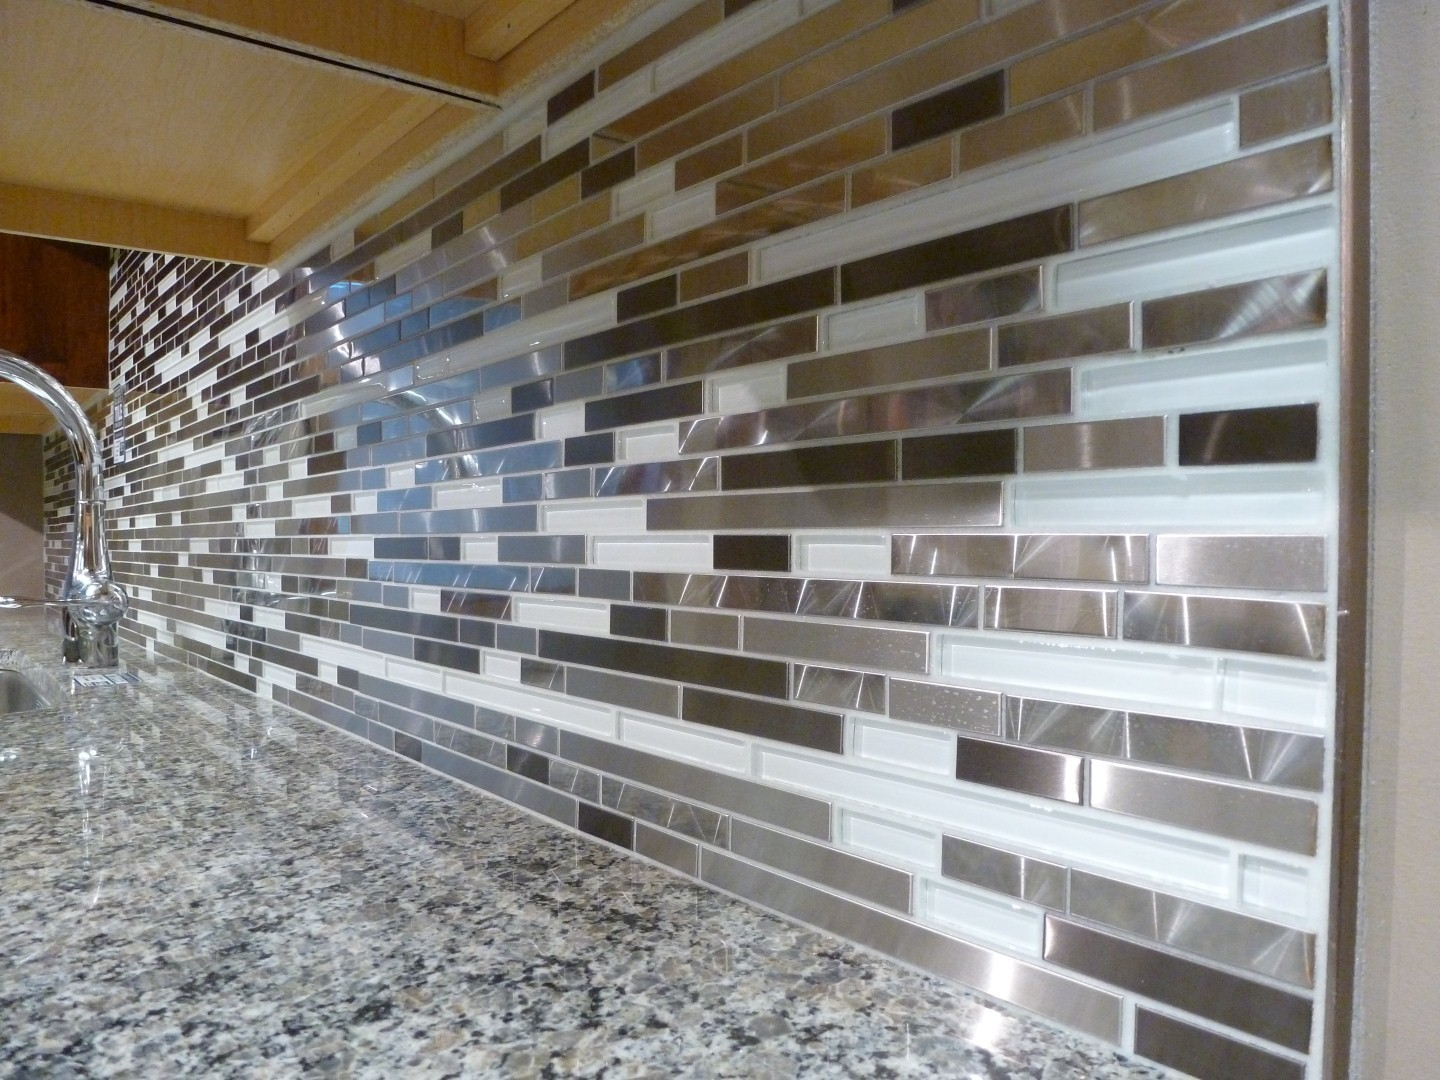 Install Mosaic Tile Backsplash Mosaics Tile Curved All Sides Fit Together